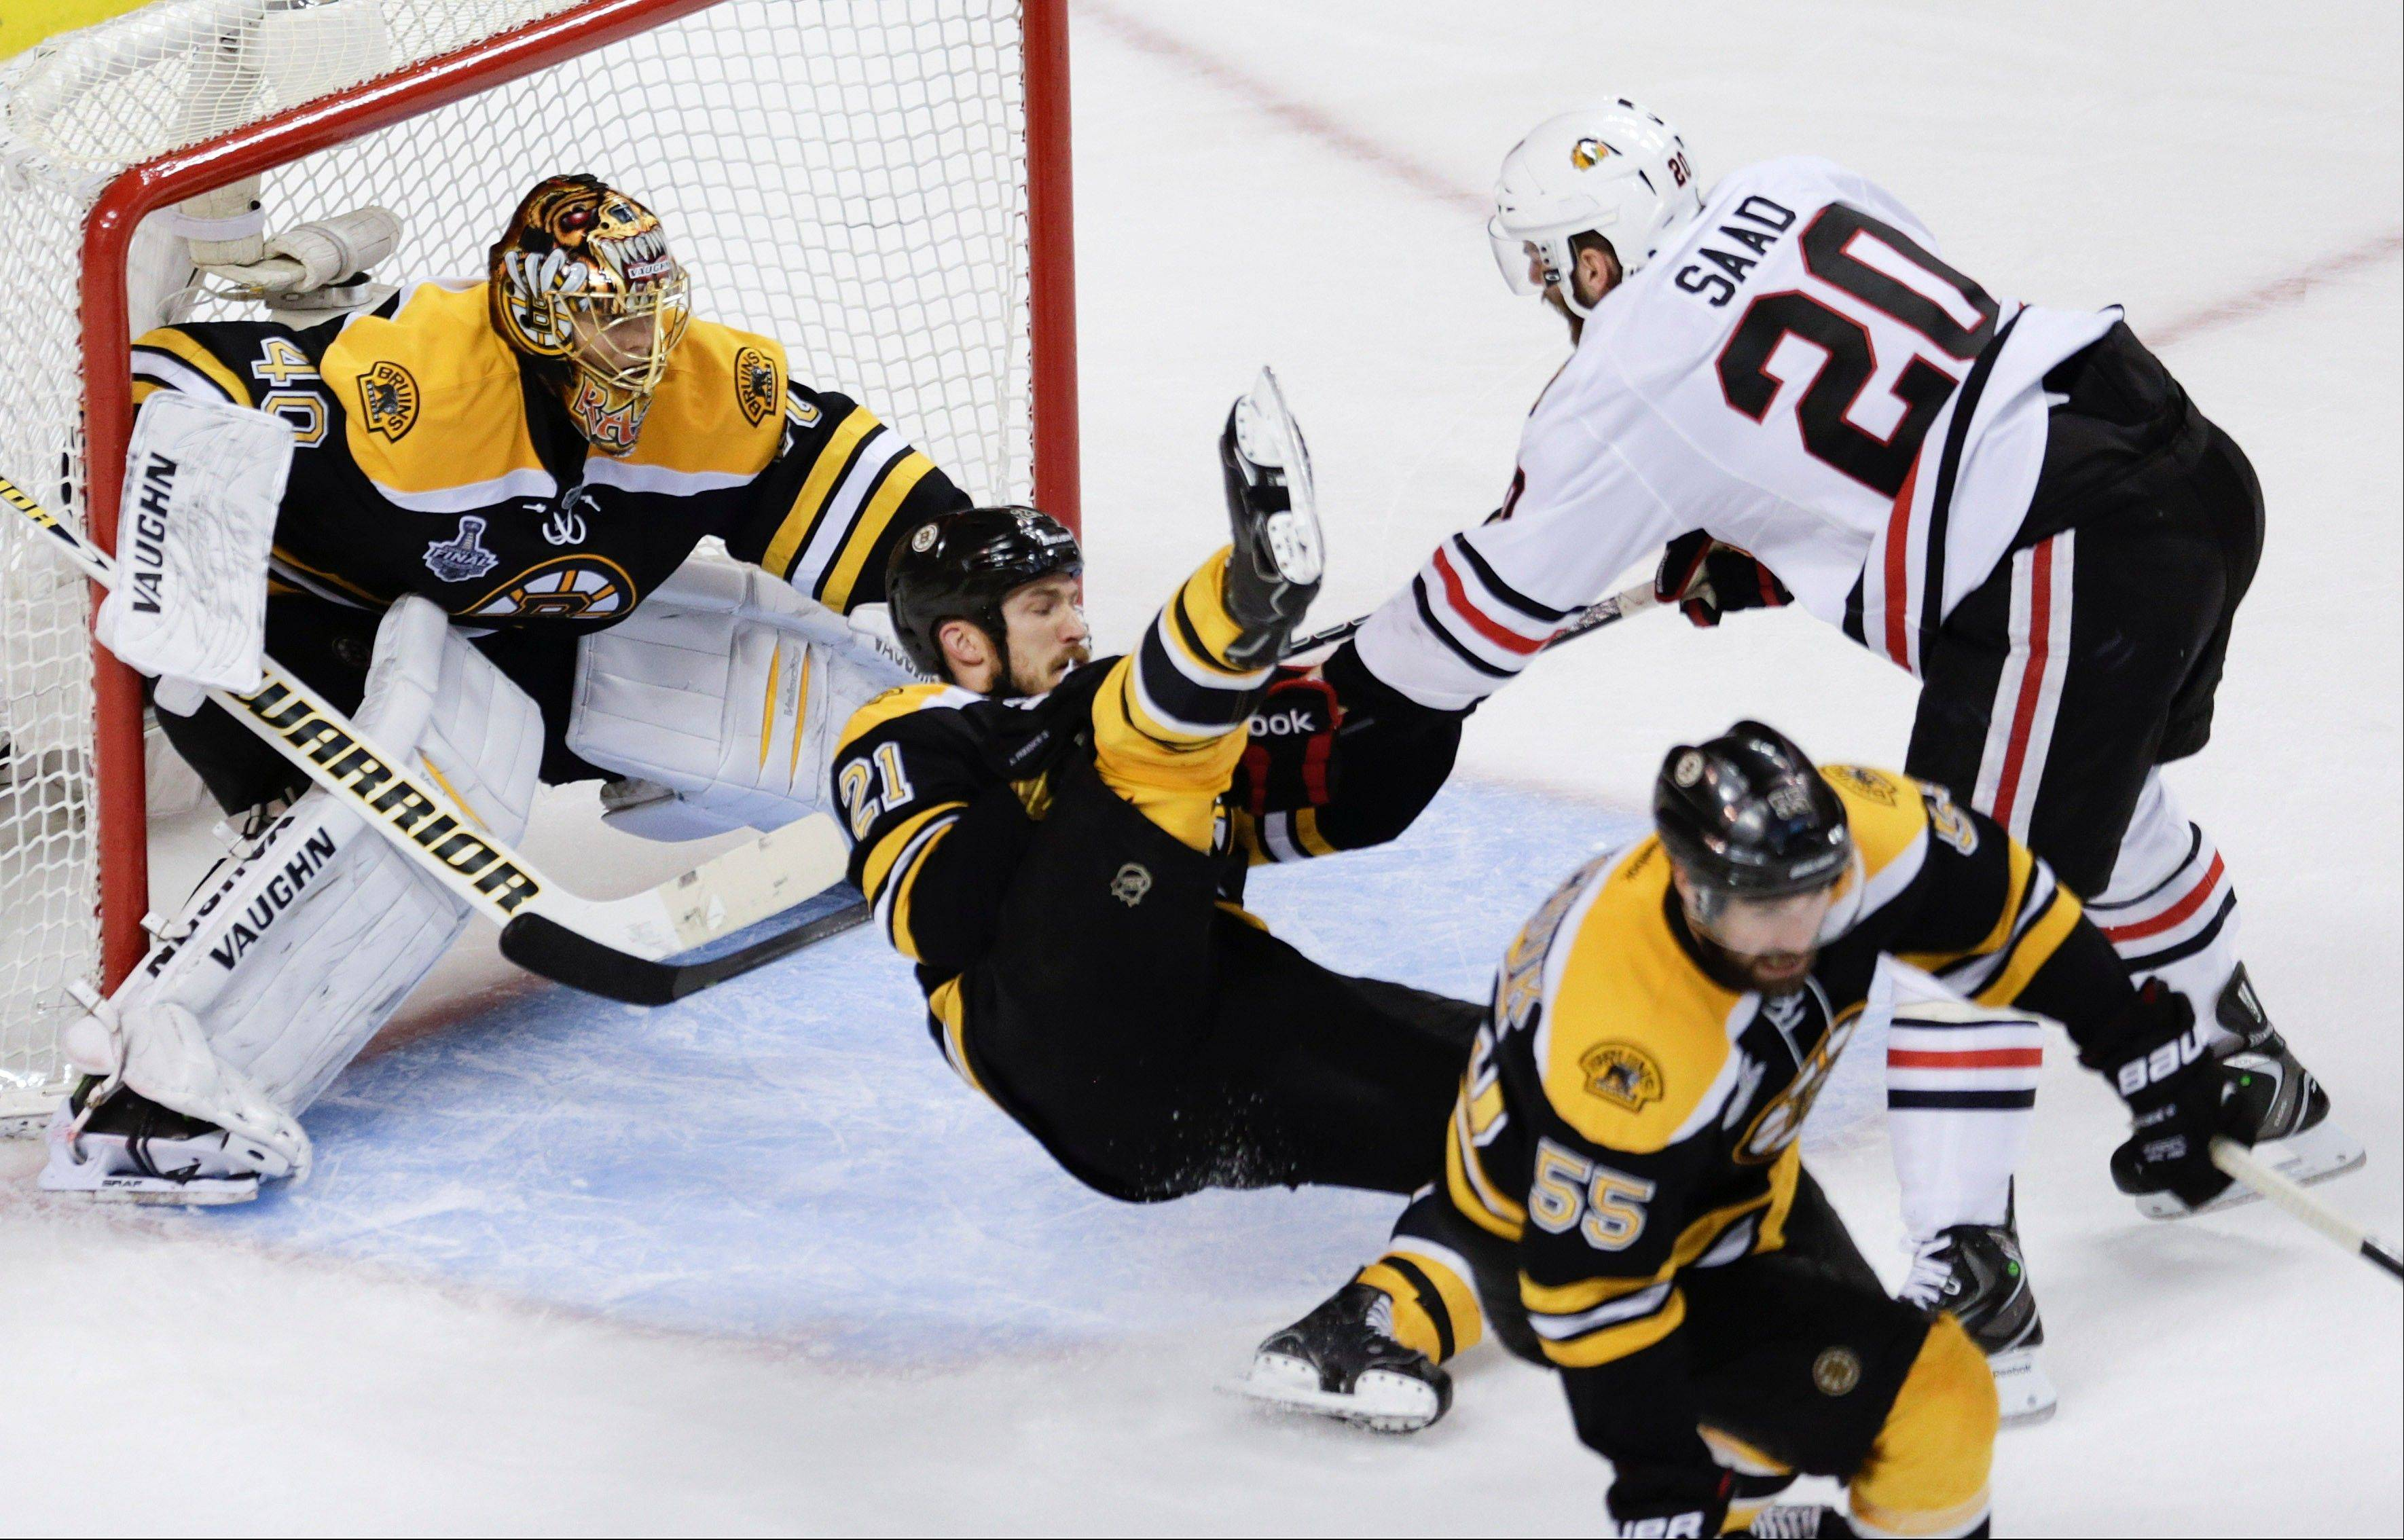 Chicago Blackhawks left wing Brandon Saad (20) takes down Boston Bruins defenseman Andrew Ference (21) in front of Bruins goalie Tuukka Rask (40), of Finland, during the third period in Game 4 of the NHL hockey Stanley Cup Finals.